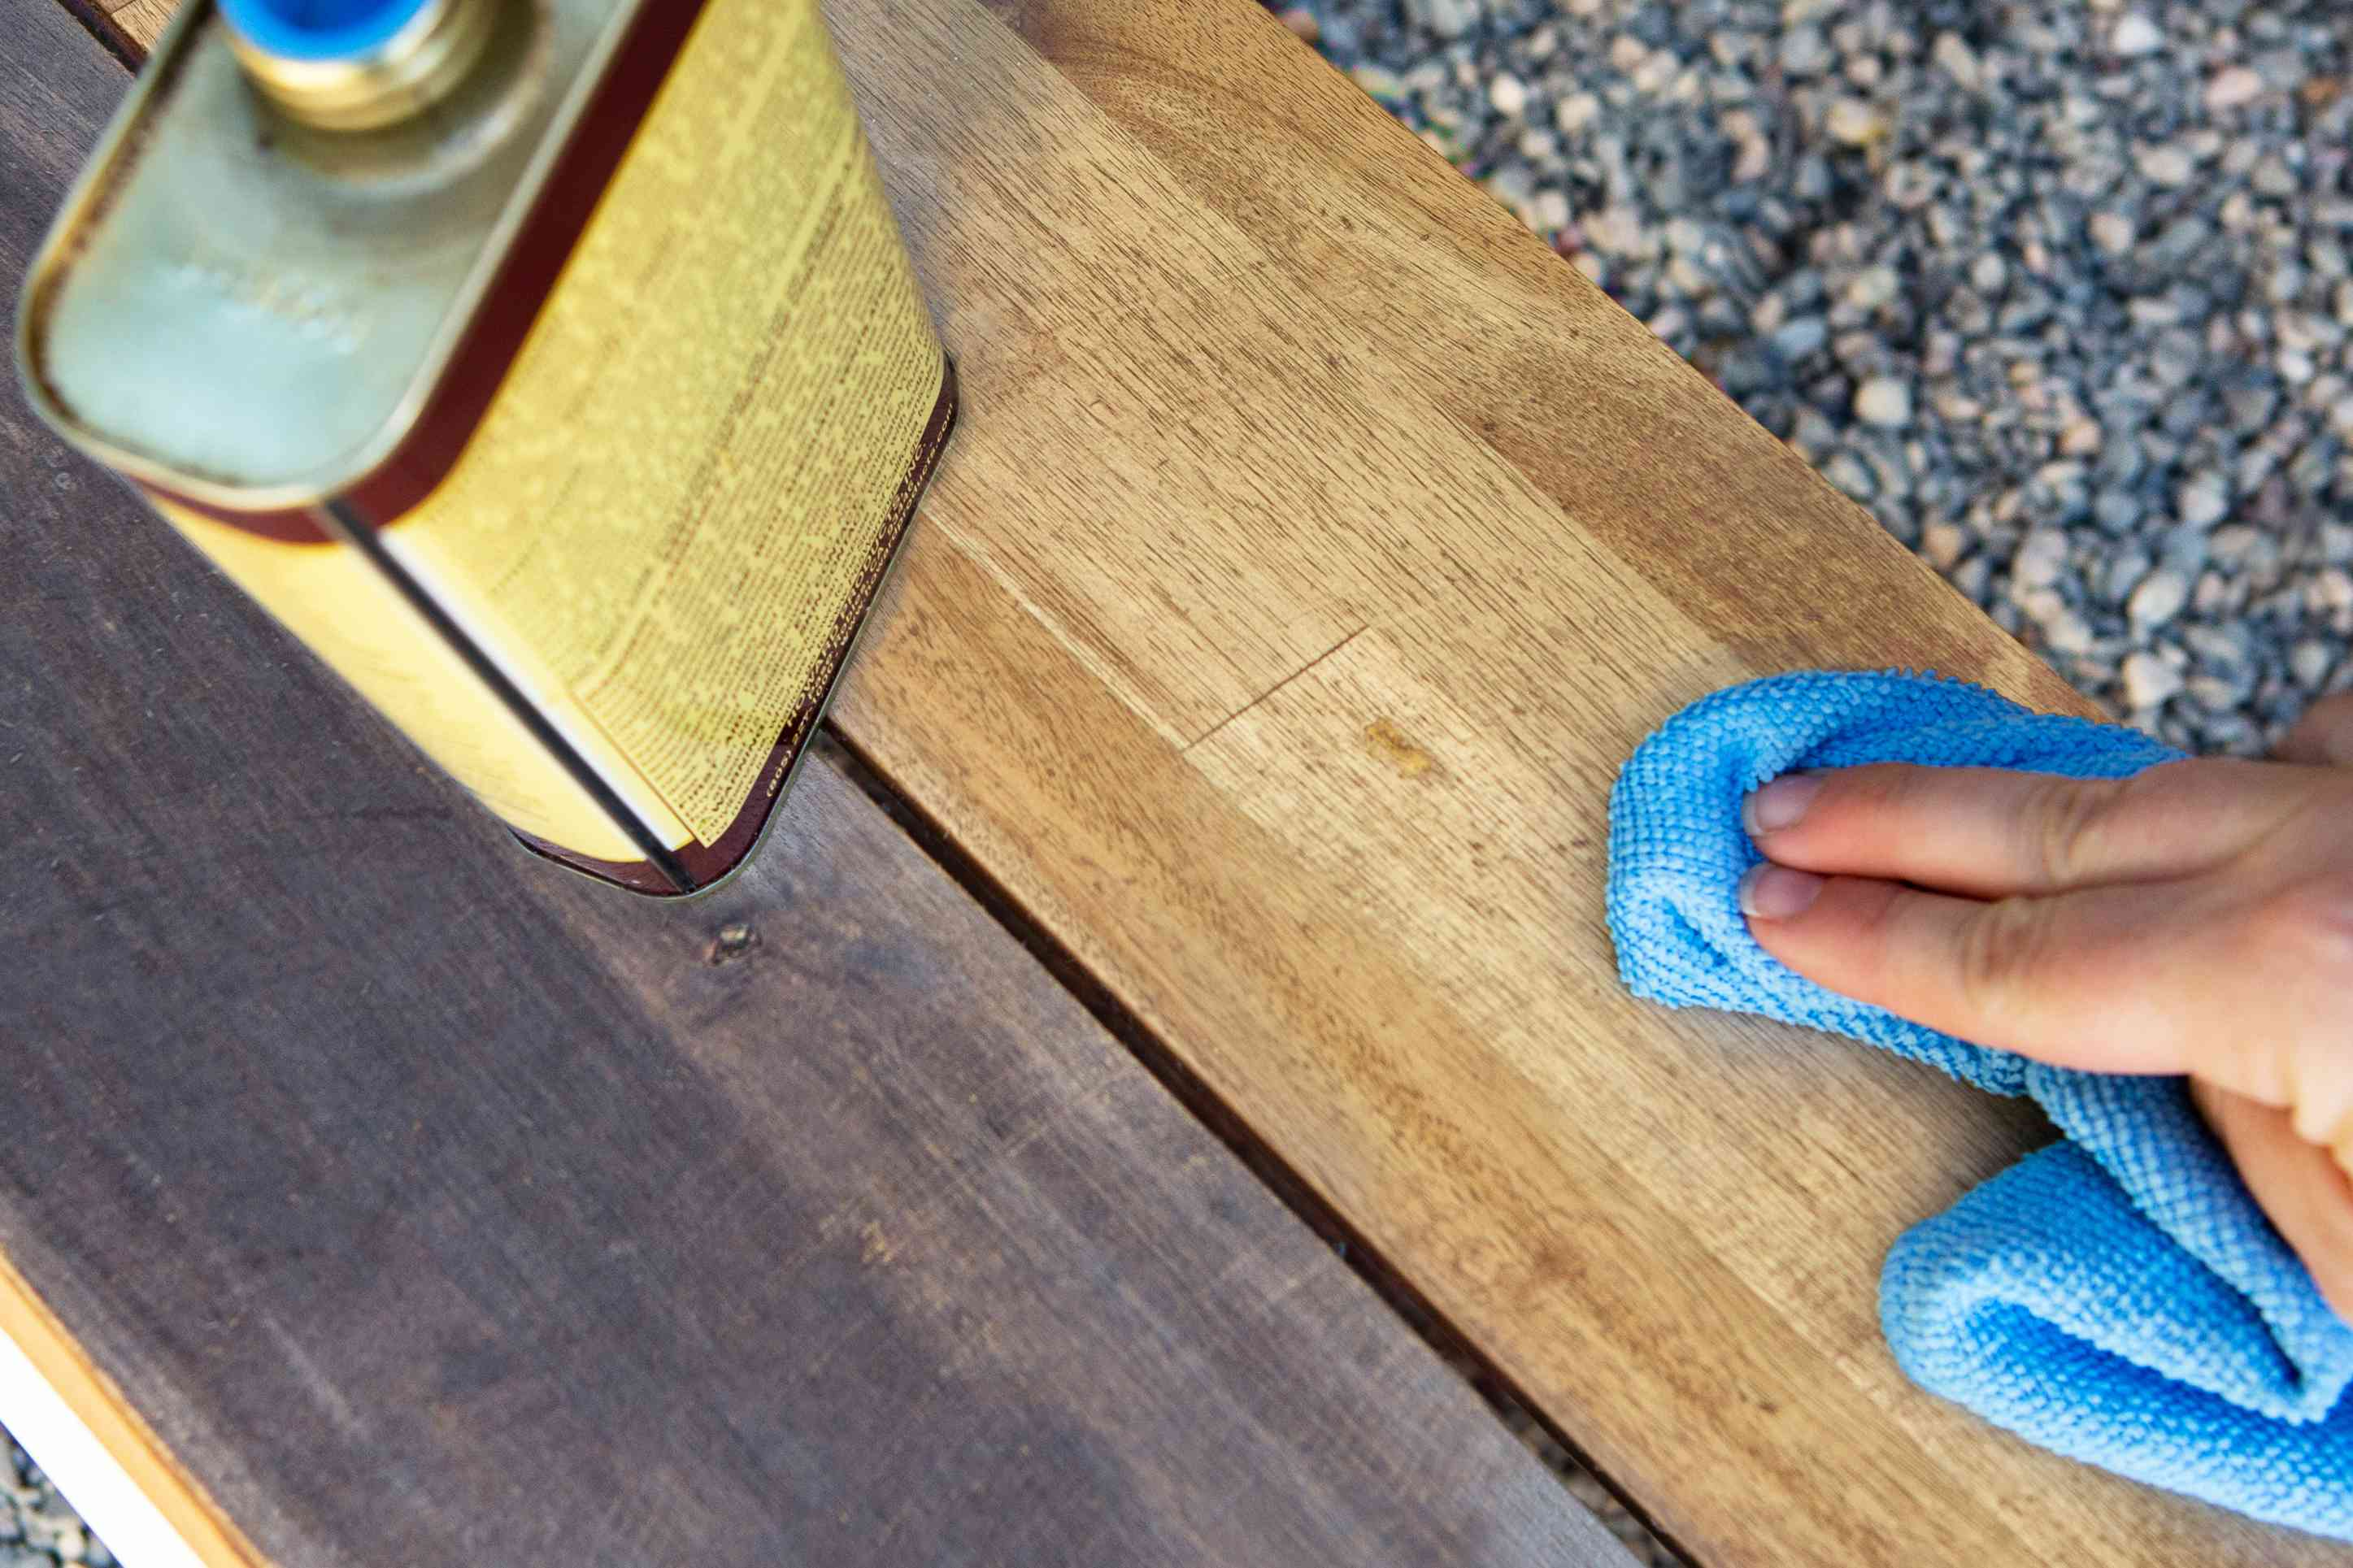 applying the wood protector with a cloth